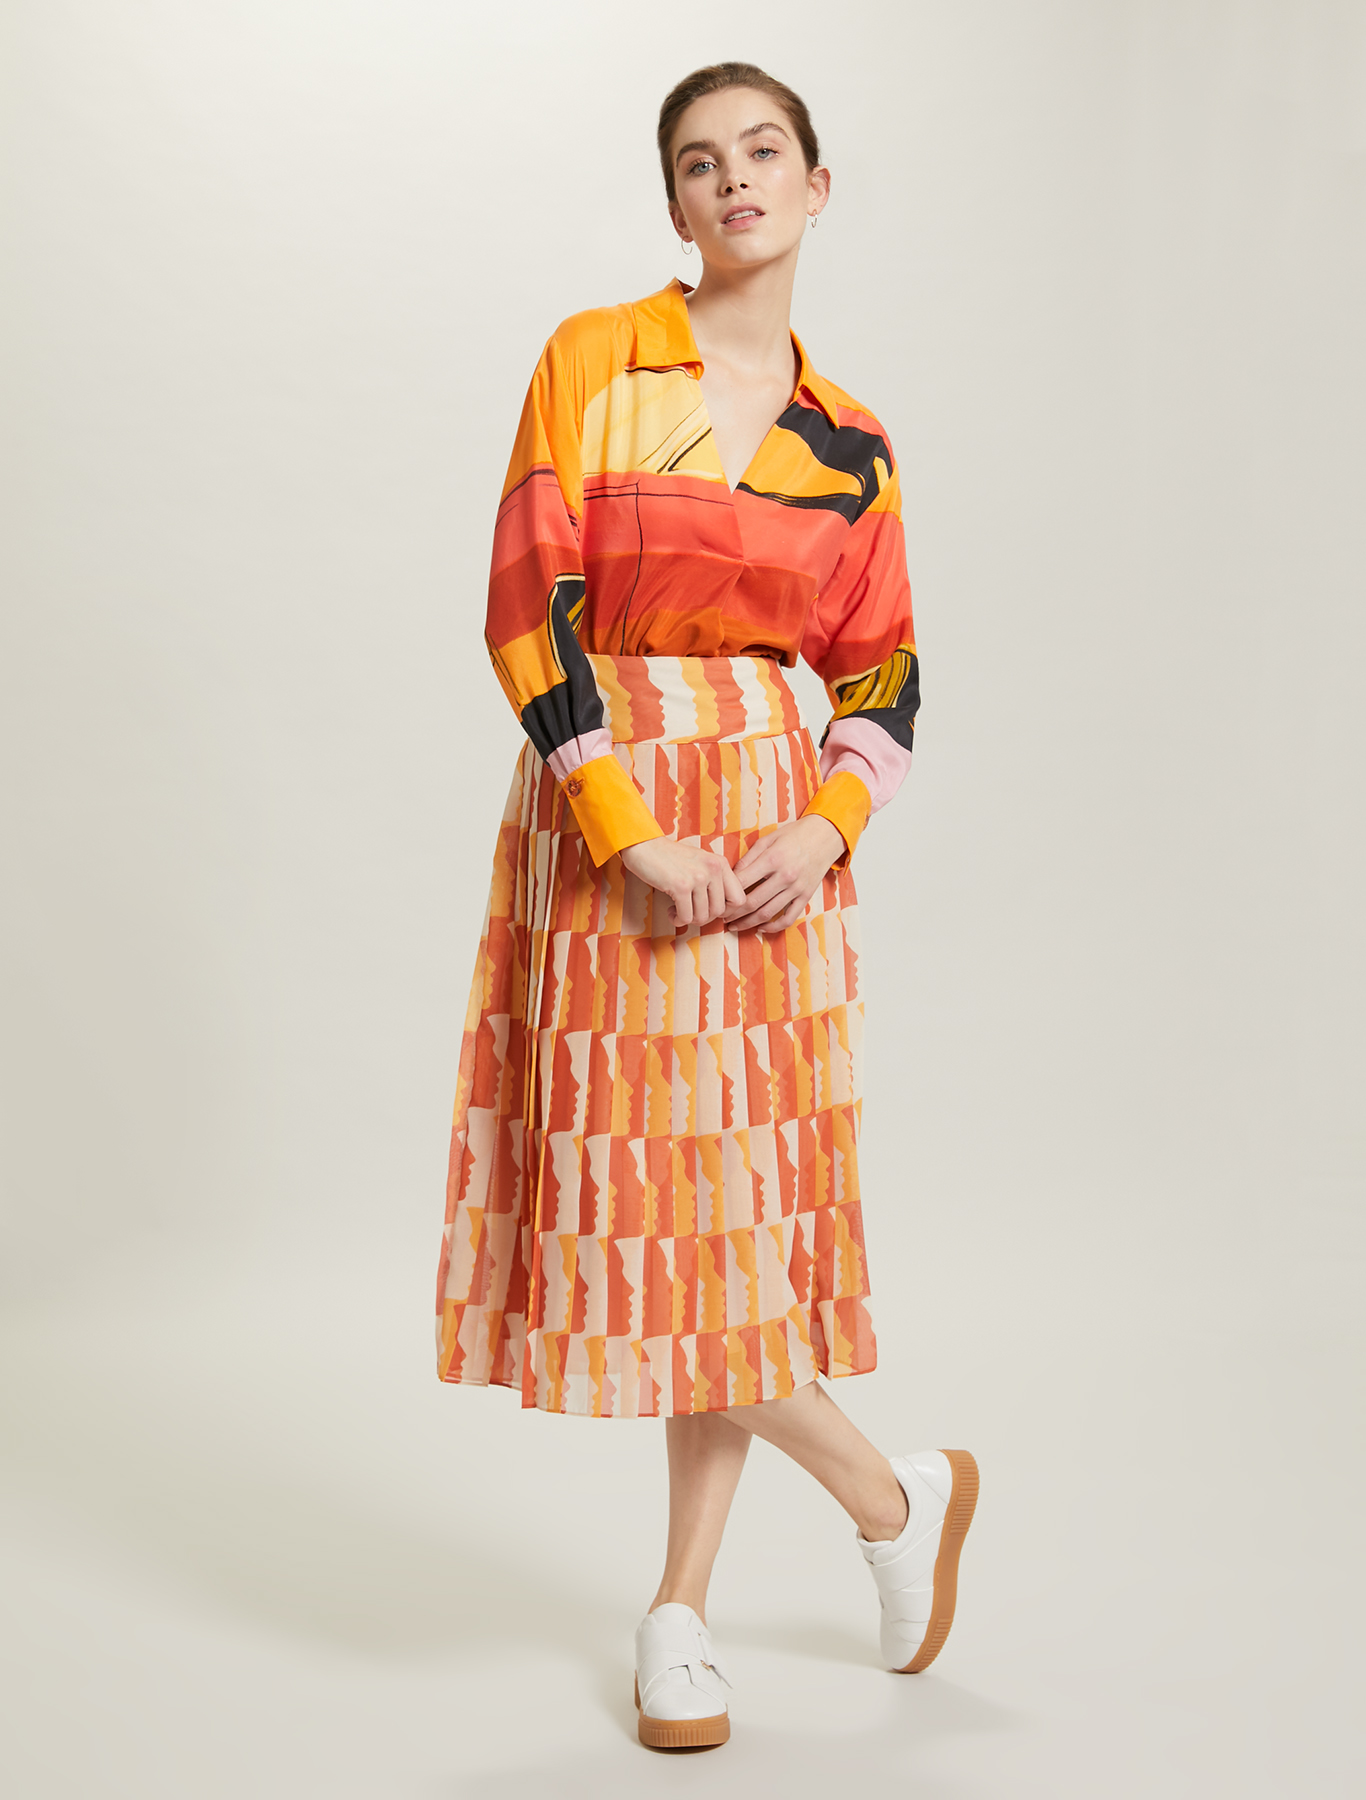 Sunset Road silk shirt - orange pattern - pennyblack